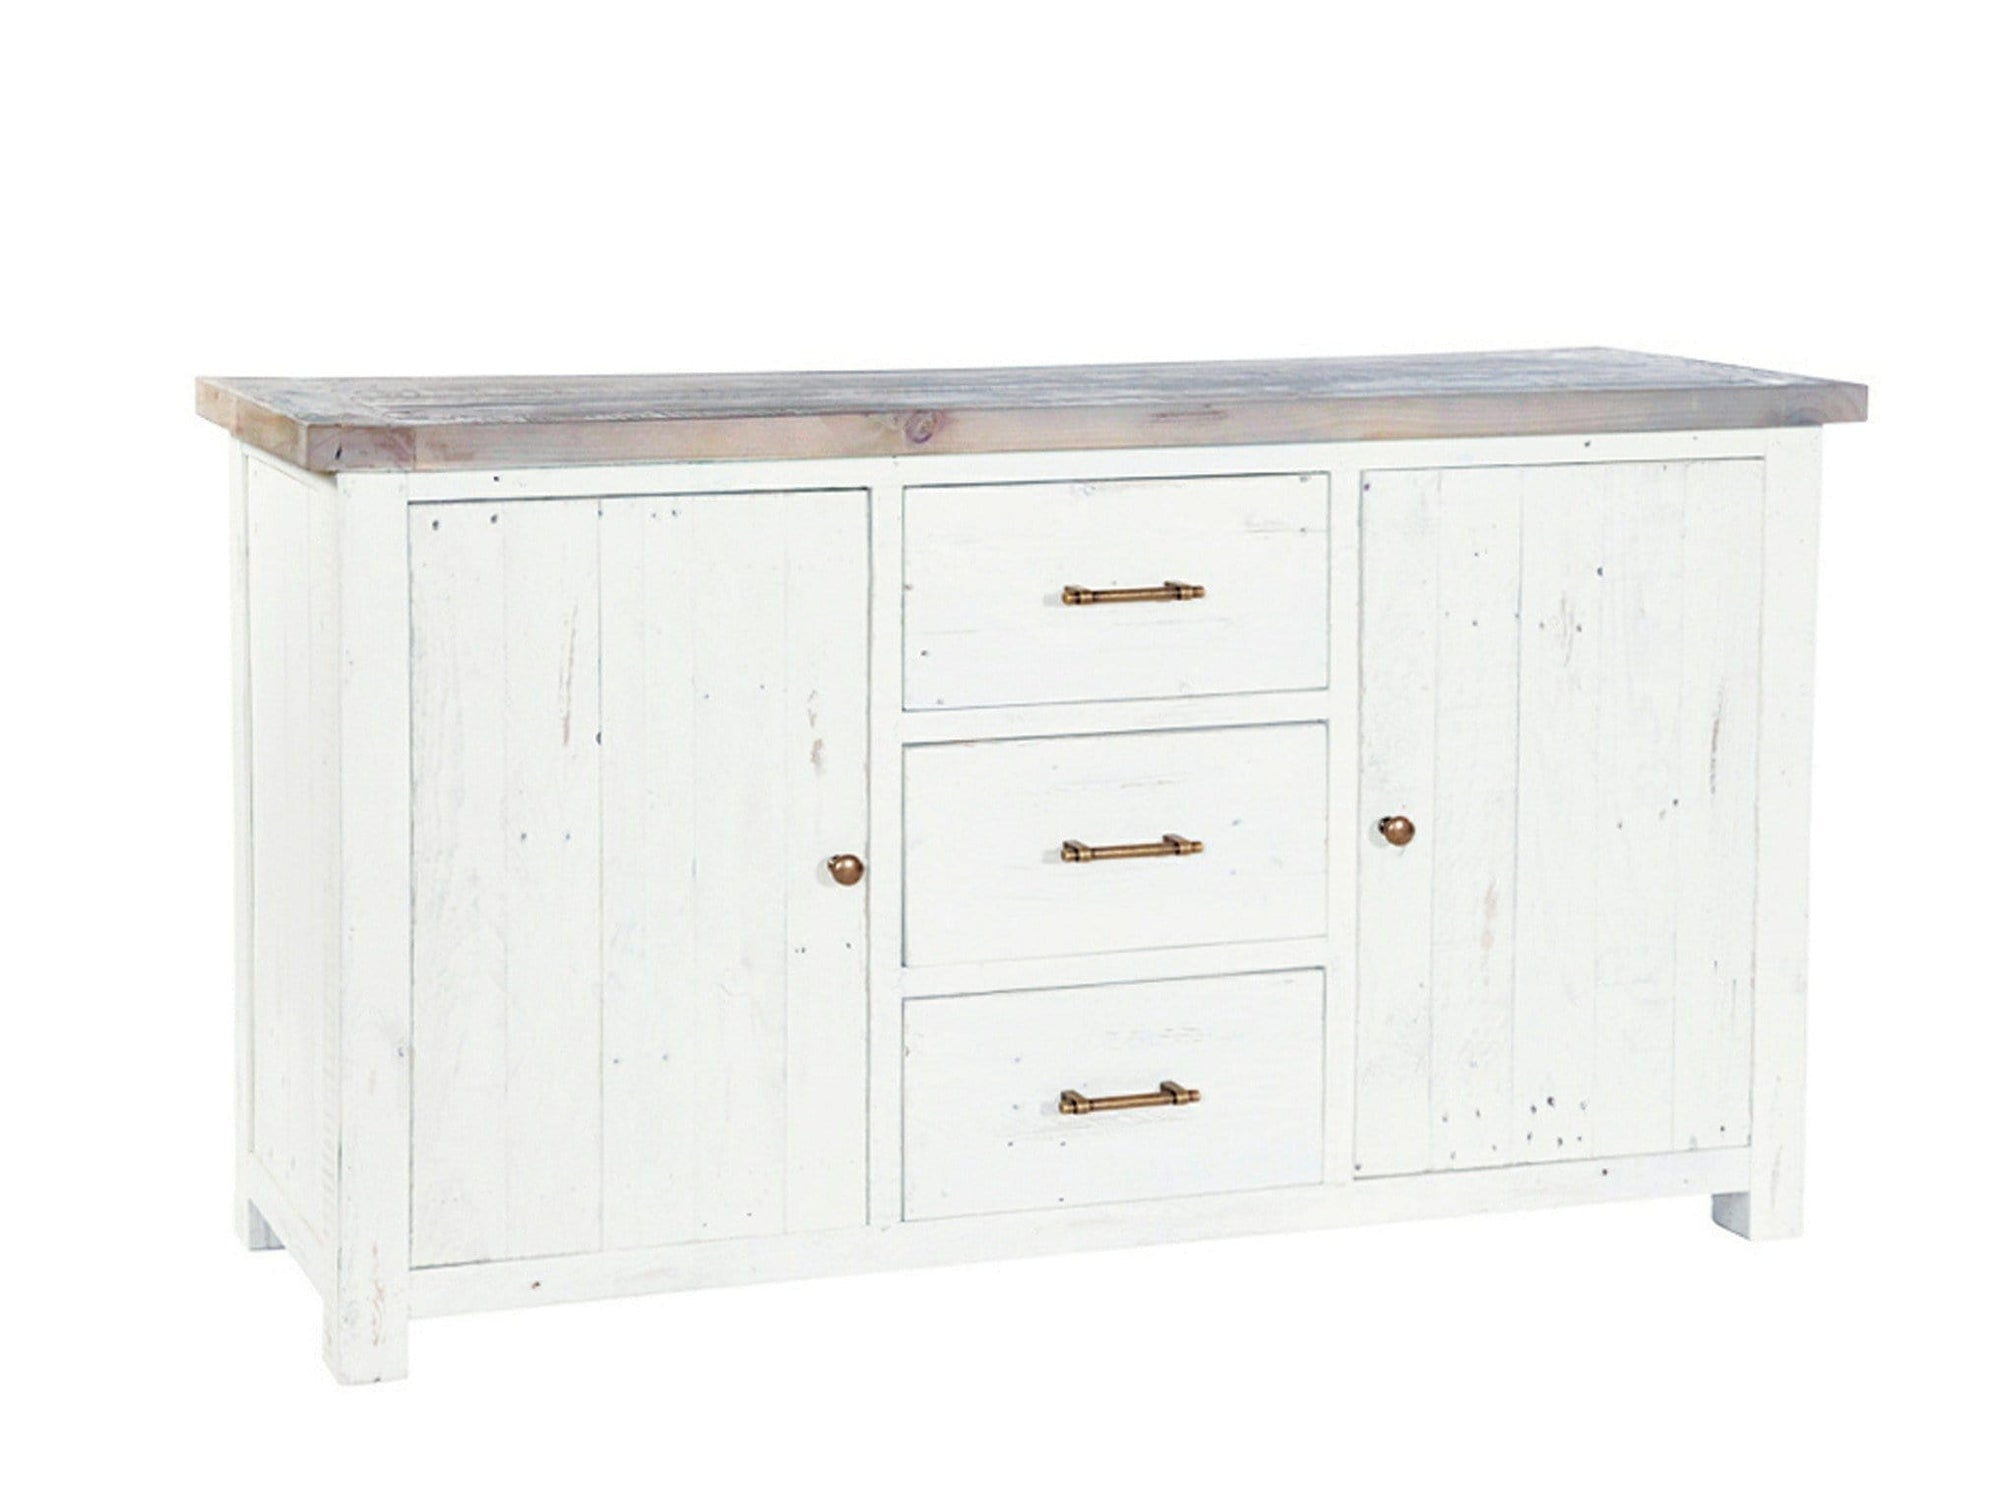 Large, ivory white rustic style sideboard with two cupboards and three central drawers